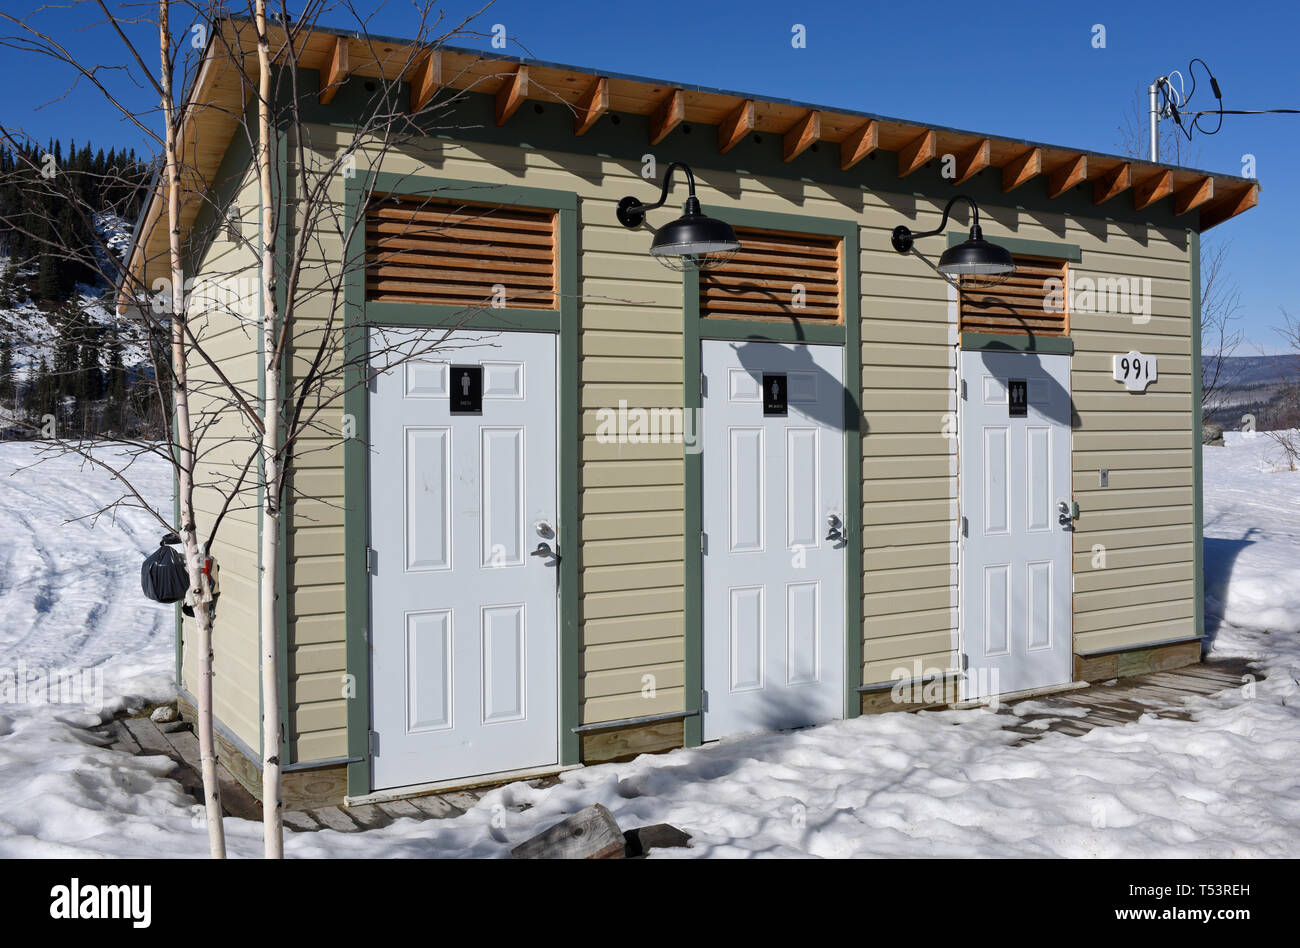 Cosy rest-rooms for men, women and couples in the historic gold-mining town of Dawson City, Yukon, Canada - Stock Image